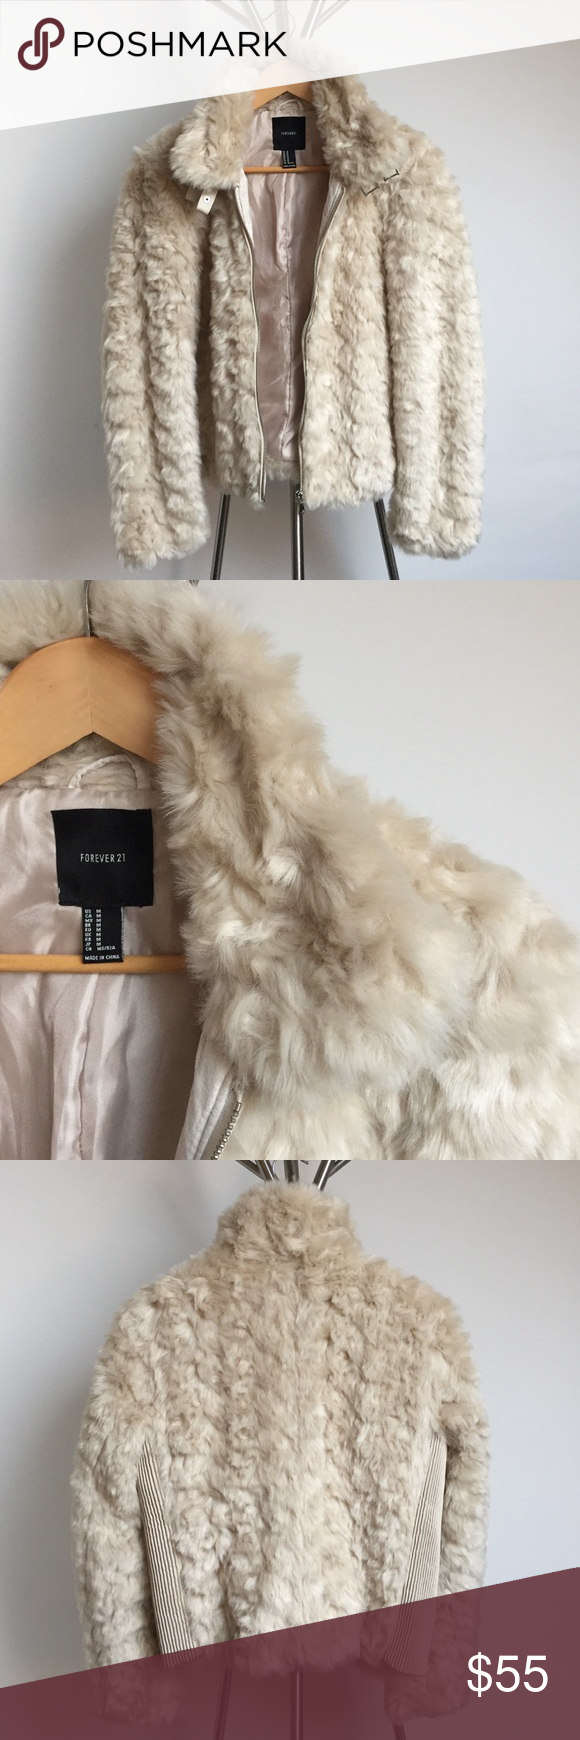 Forever 21 Faux Fur Coat (With images) Cream faux fur jacket